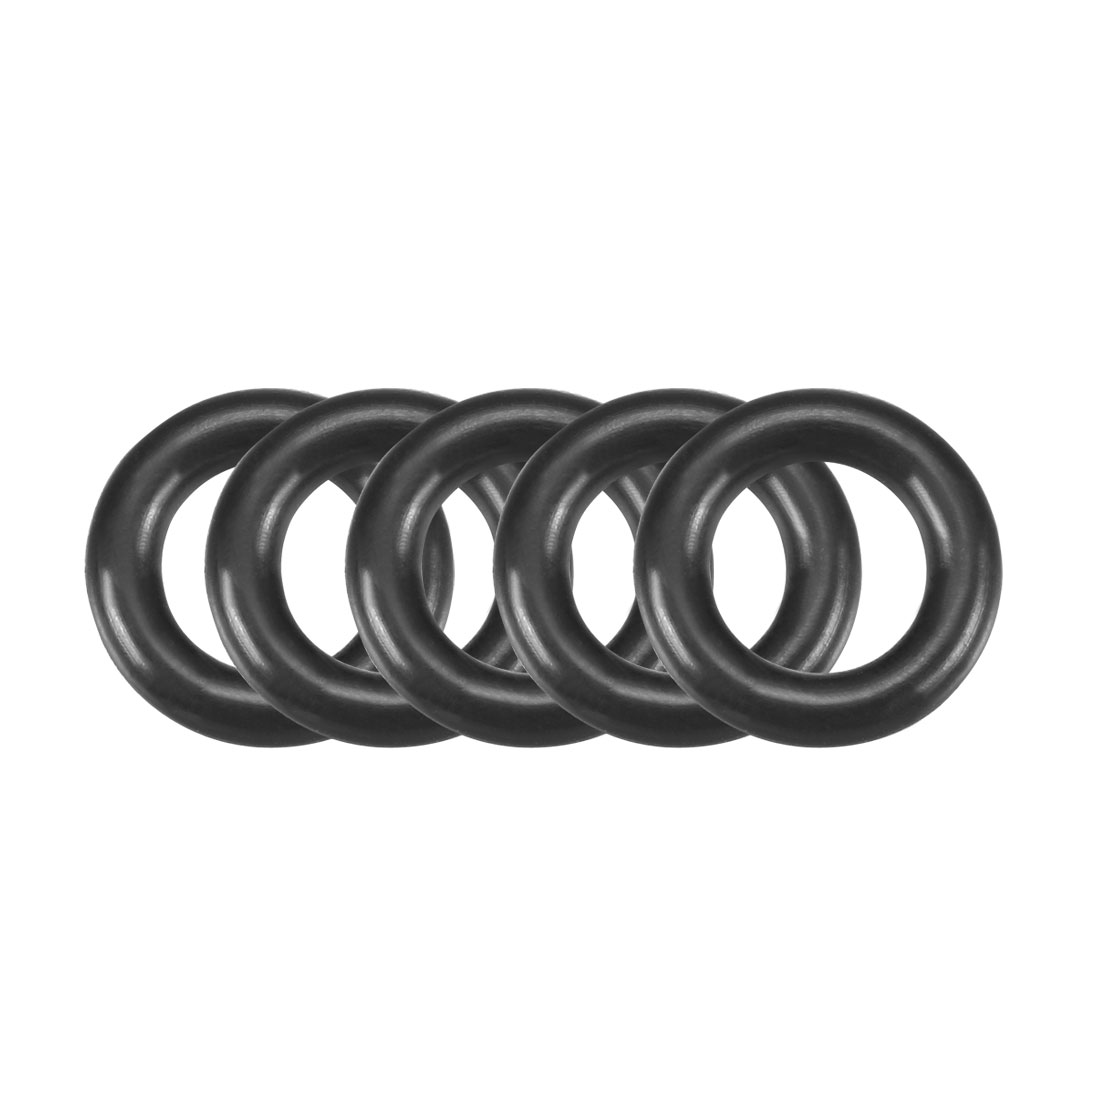 50 Pcs 17mm x 3.5mm NBR Nitrile Rubber O Ring Sealing Gaskets Black